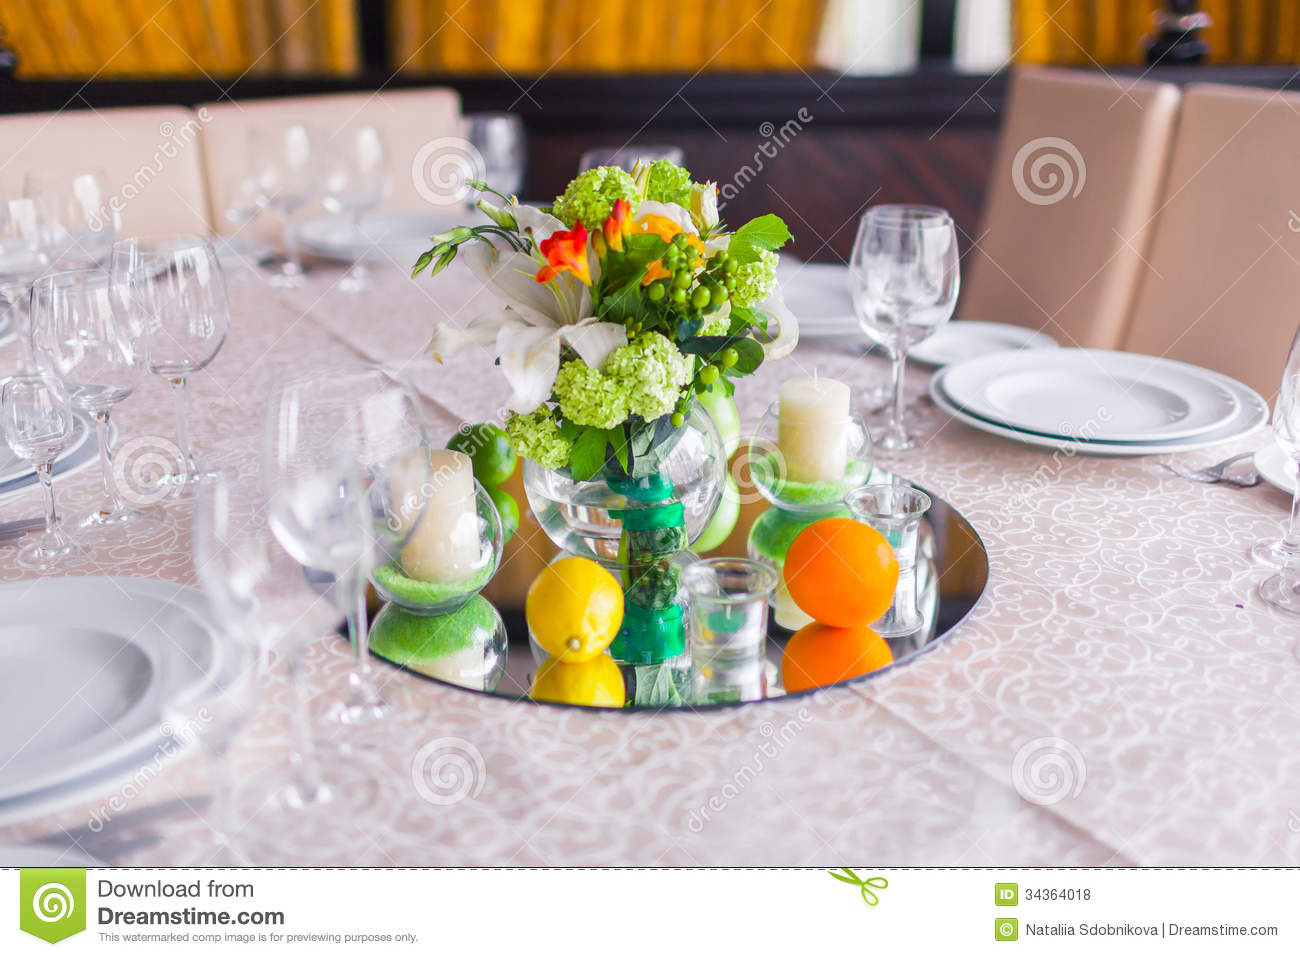 Decorated Tables tables decorated with flowers royalty free stock photos - image